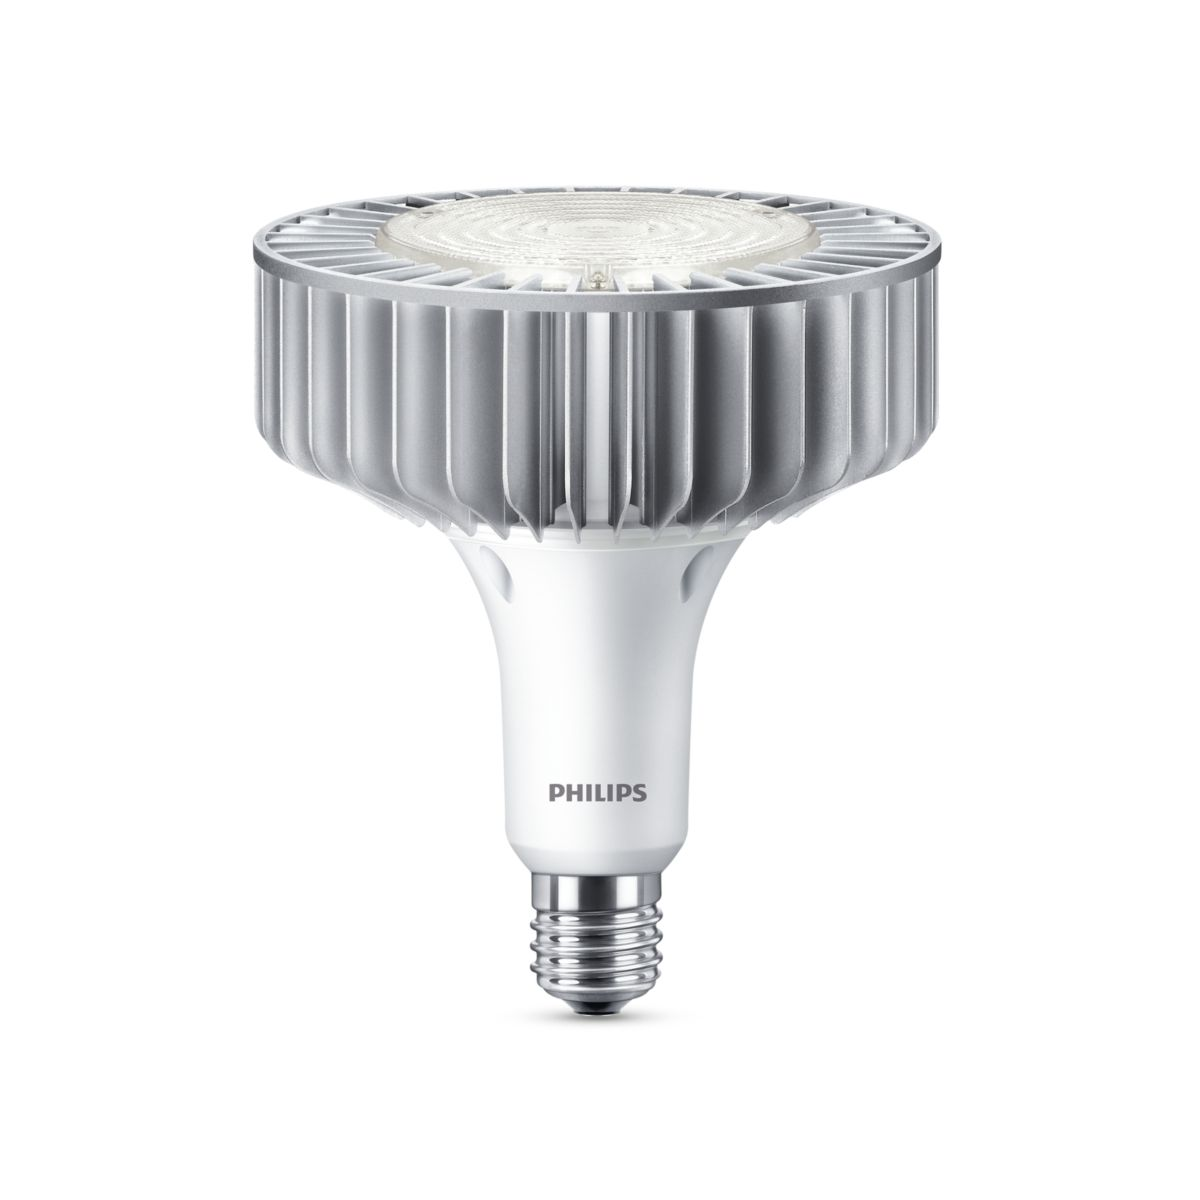 Delightful A Simple LED Solution For Direct HID Lamp Replacement With Instant Saving  And Low Initial Cost